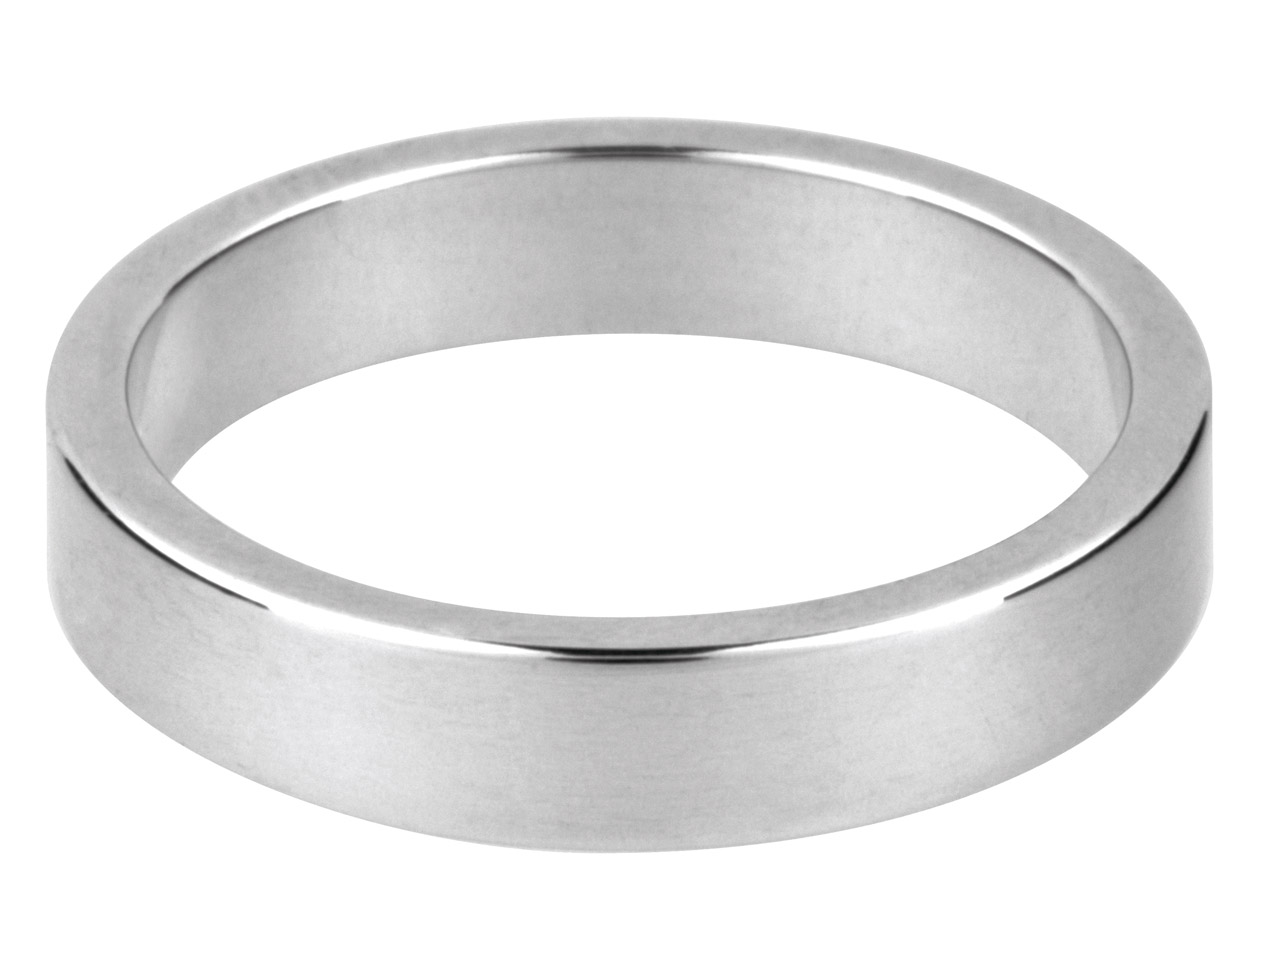 18ct White Flat Wedding Ring 5.0mm Q 6.7gms Medium Weight Hallmarked  Wall Thickness 1.30mm